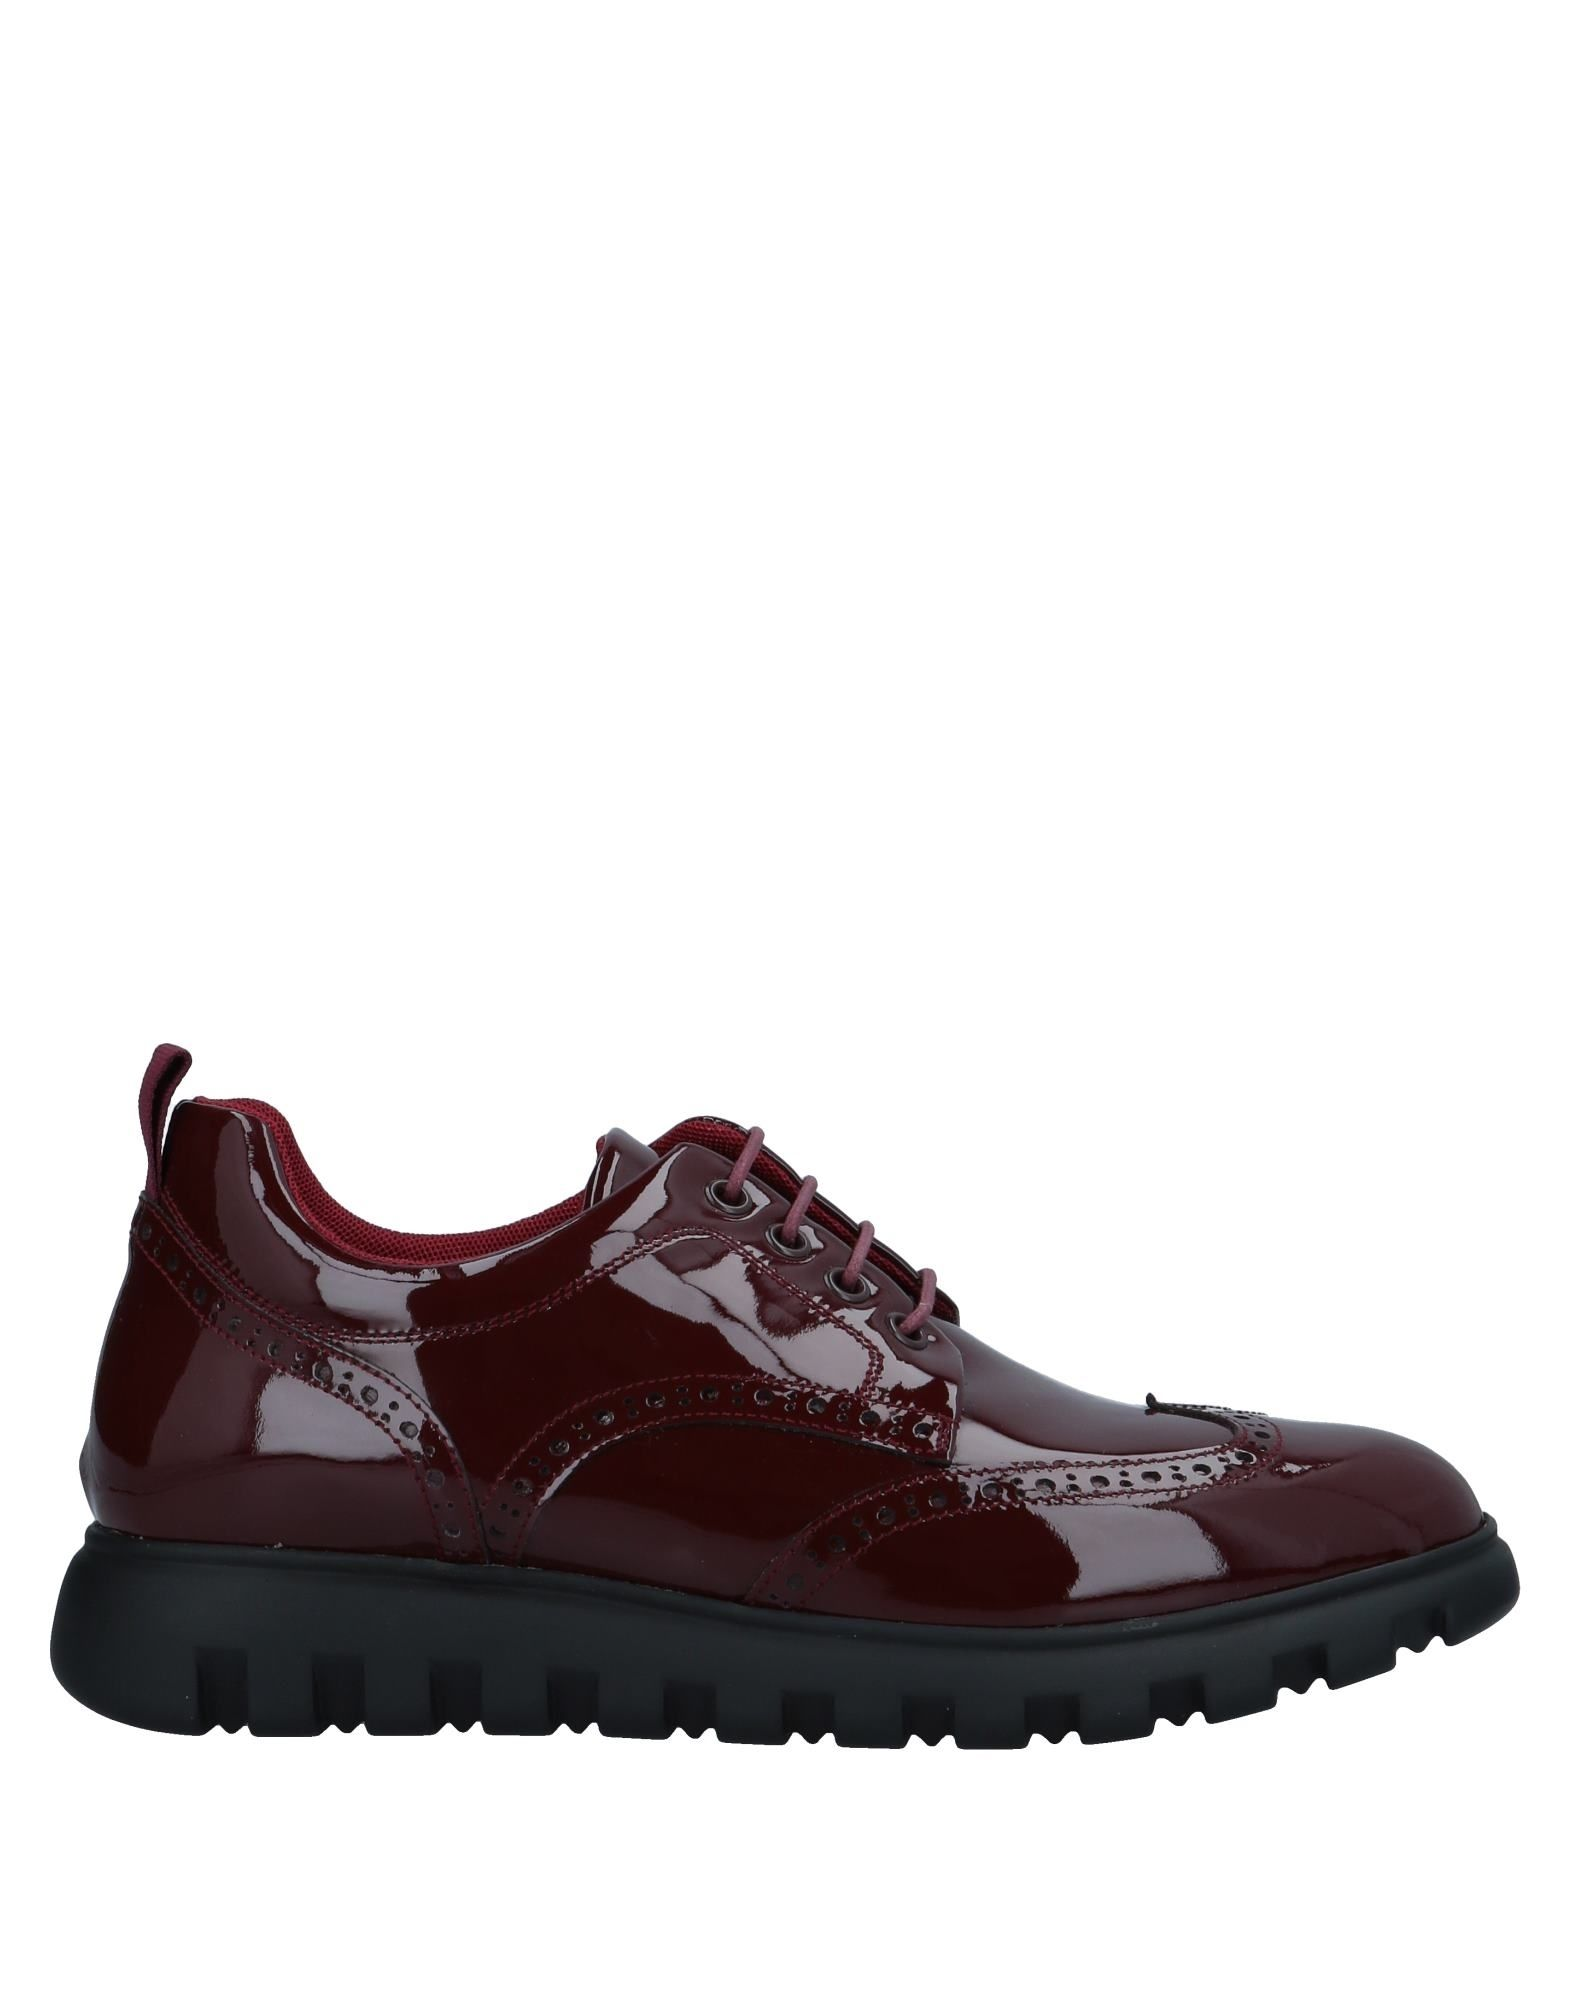 VOILE BLANCHE Sneakers in Maroon